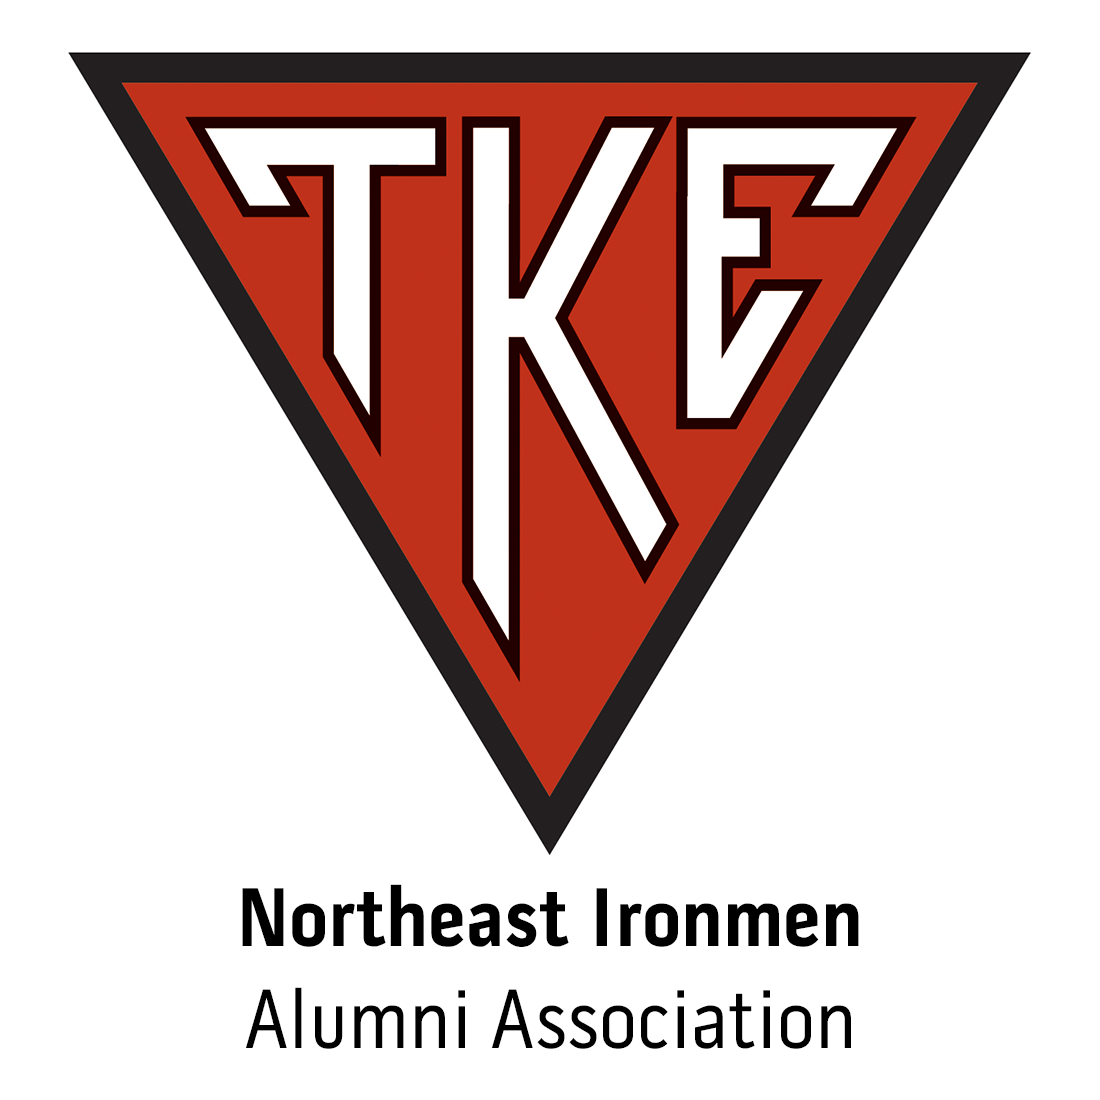 Northeast Ironmen Alumni Association for Region 1